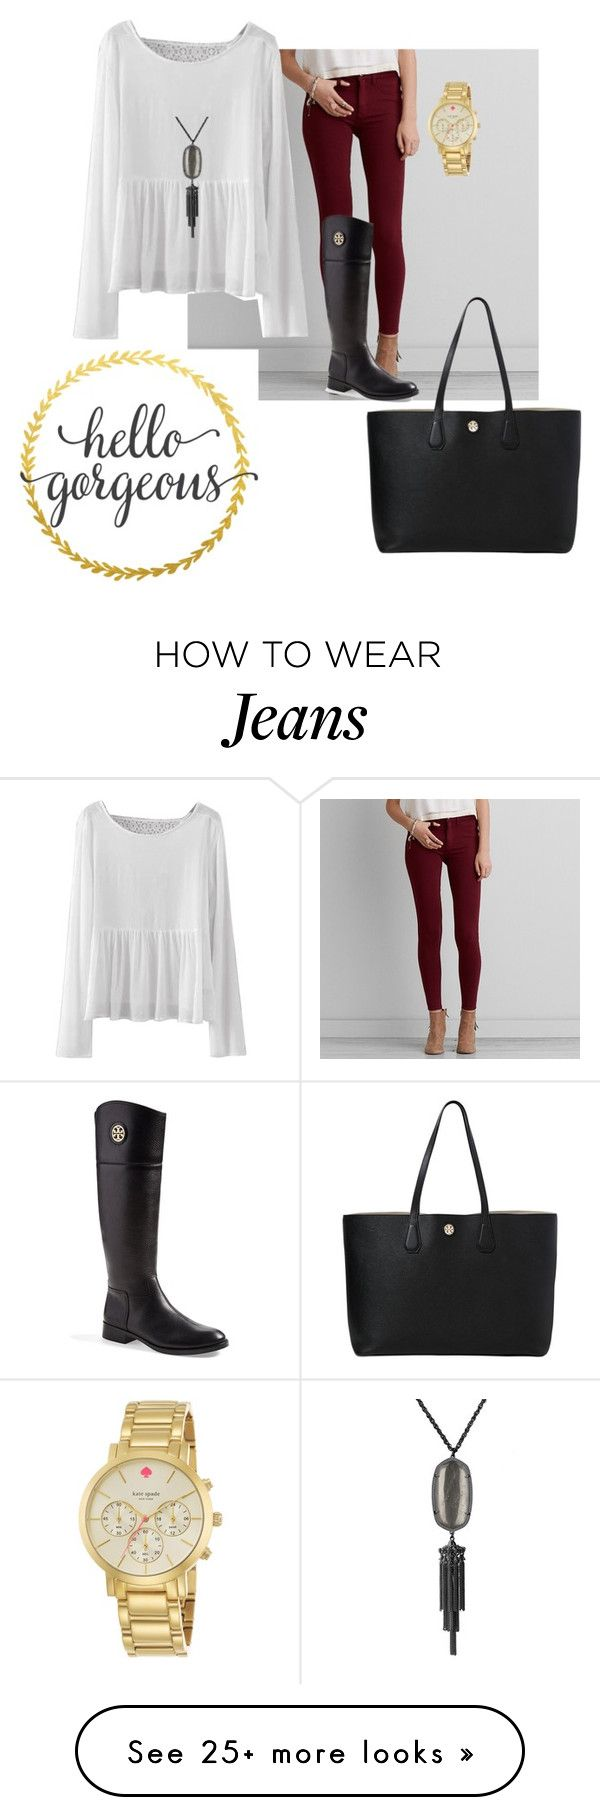 """""""Maroon jeans"""" by txpreppy on Polyvore featuring American Eagle Outfitters, Kate Spade, Tory Burch and Kendra Scott"""